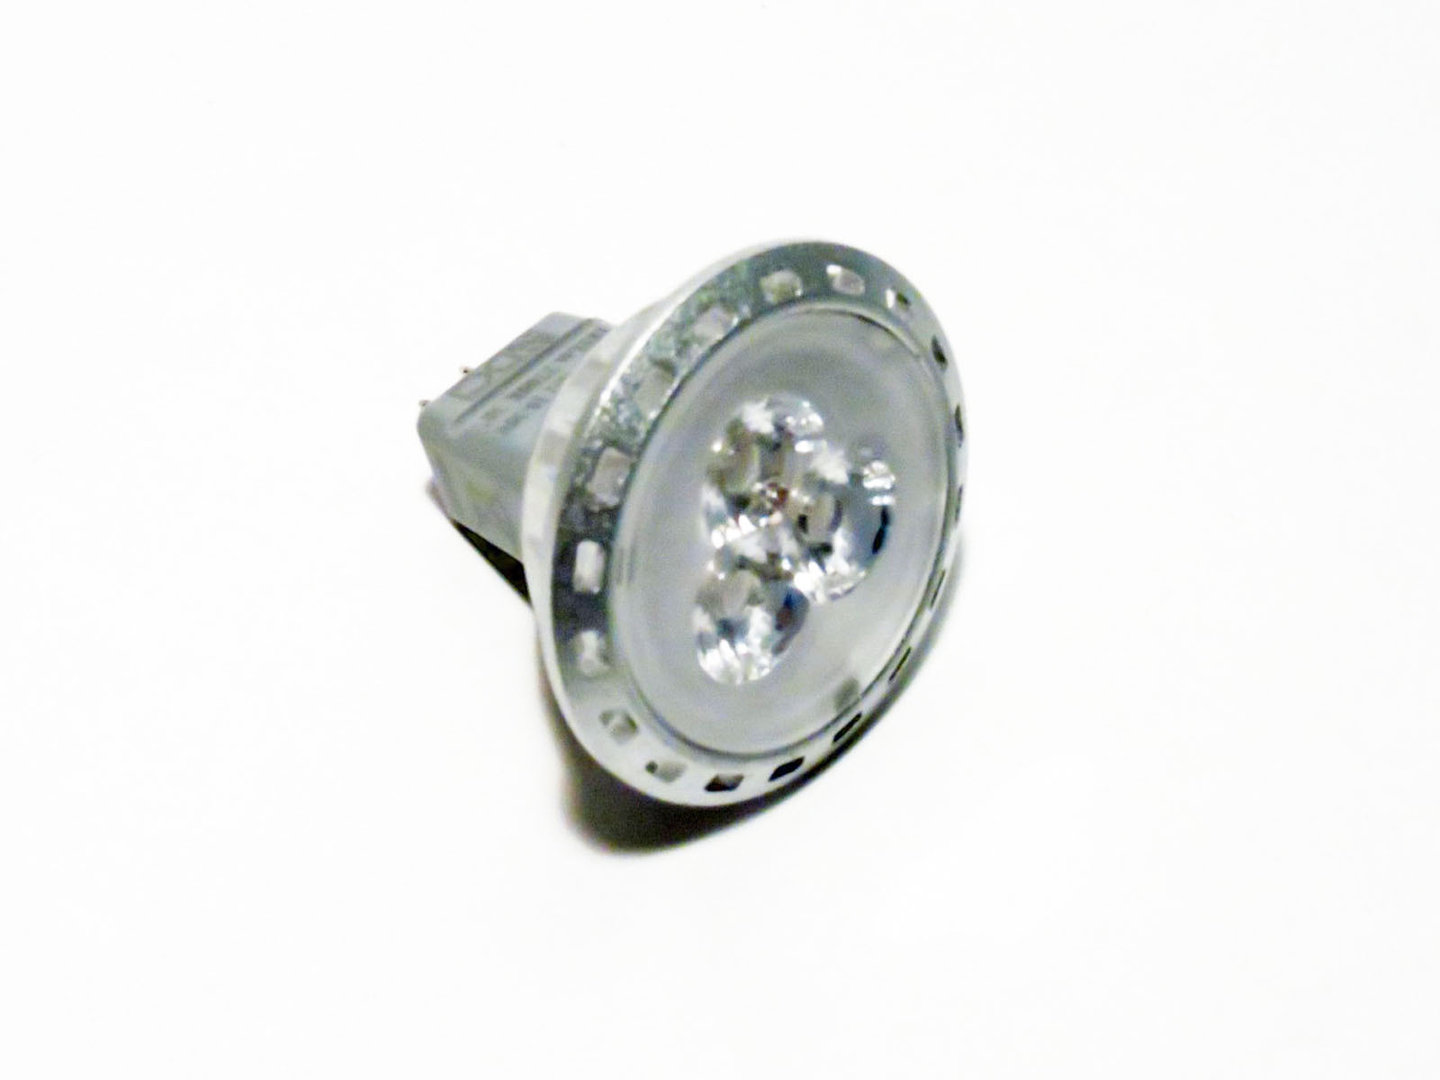 MR11 GU4 HighPower LED 2,5W 30° 10-30V 4000k daylight